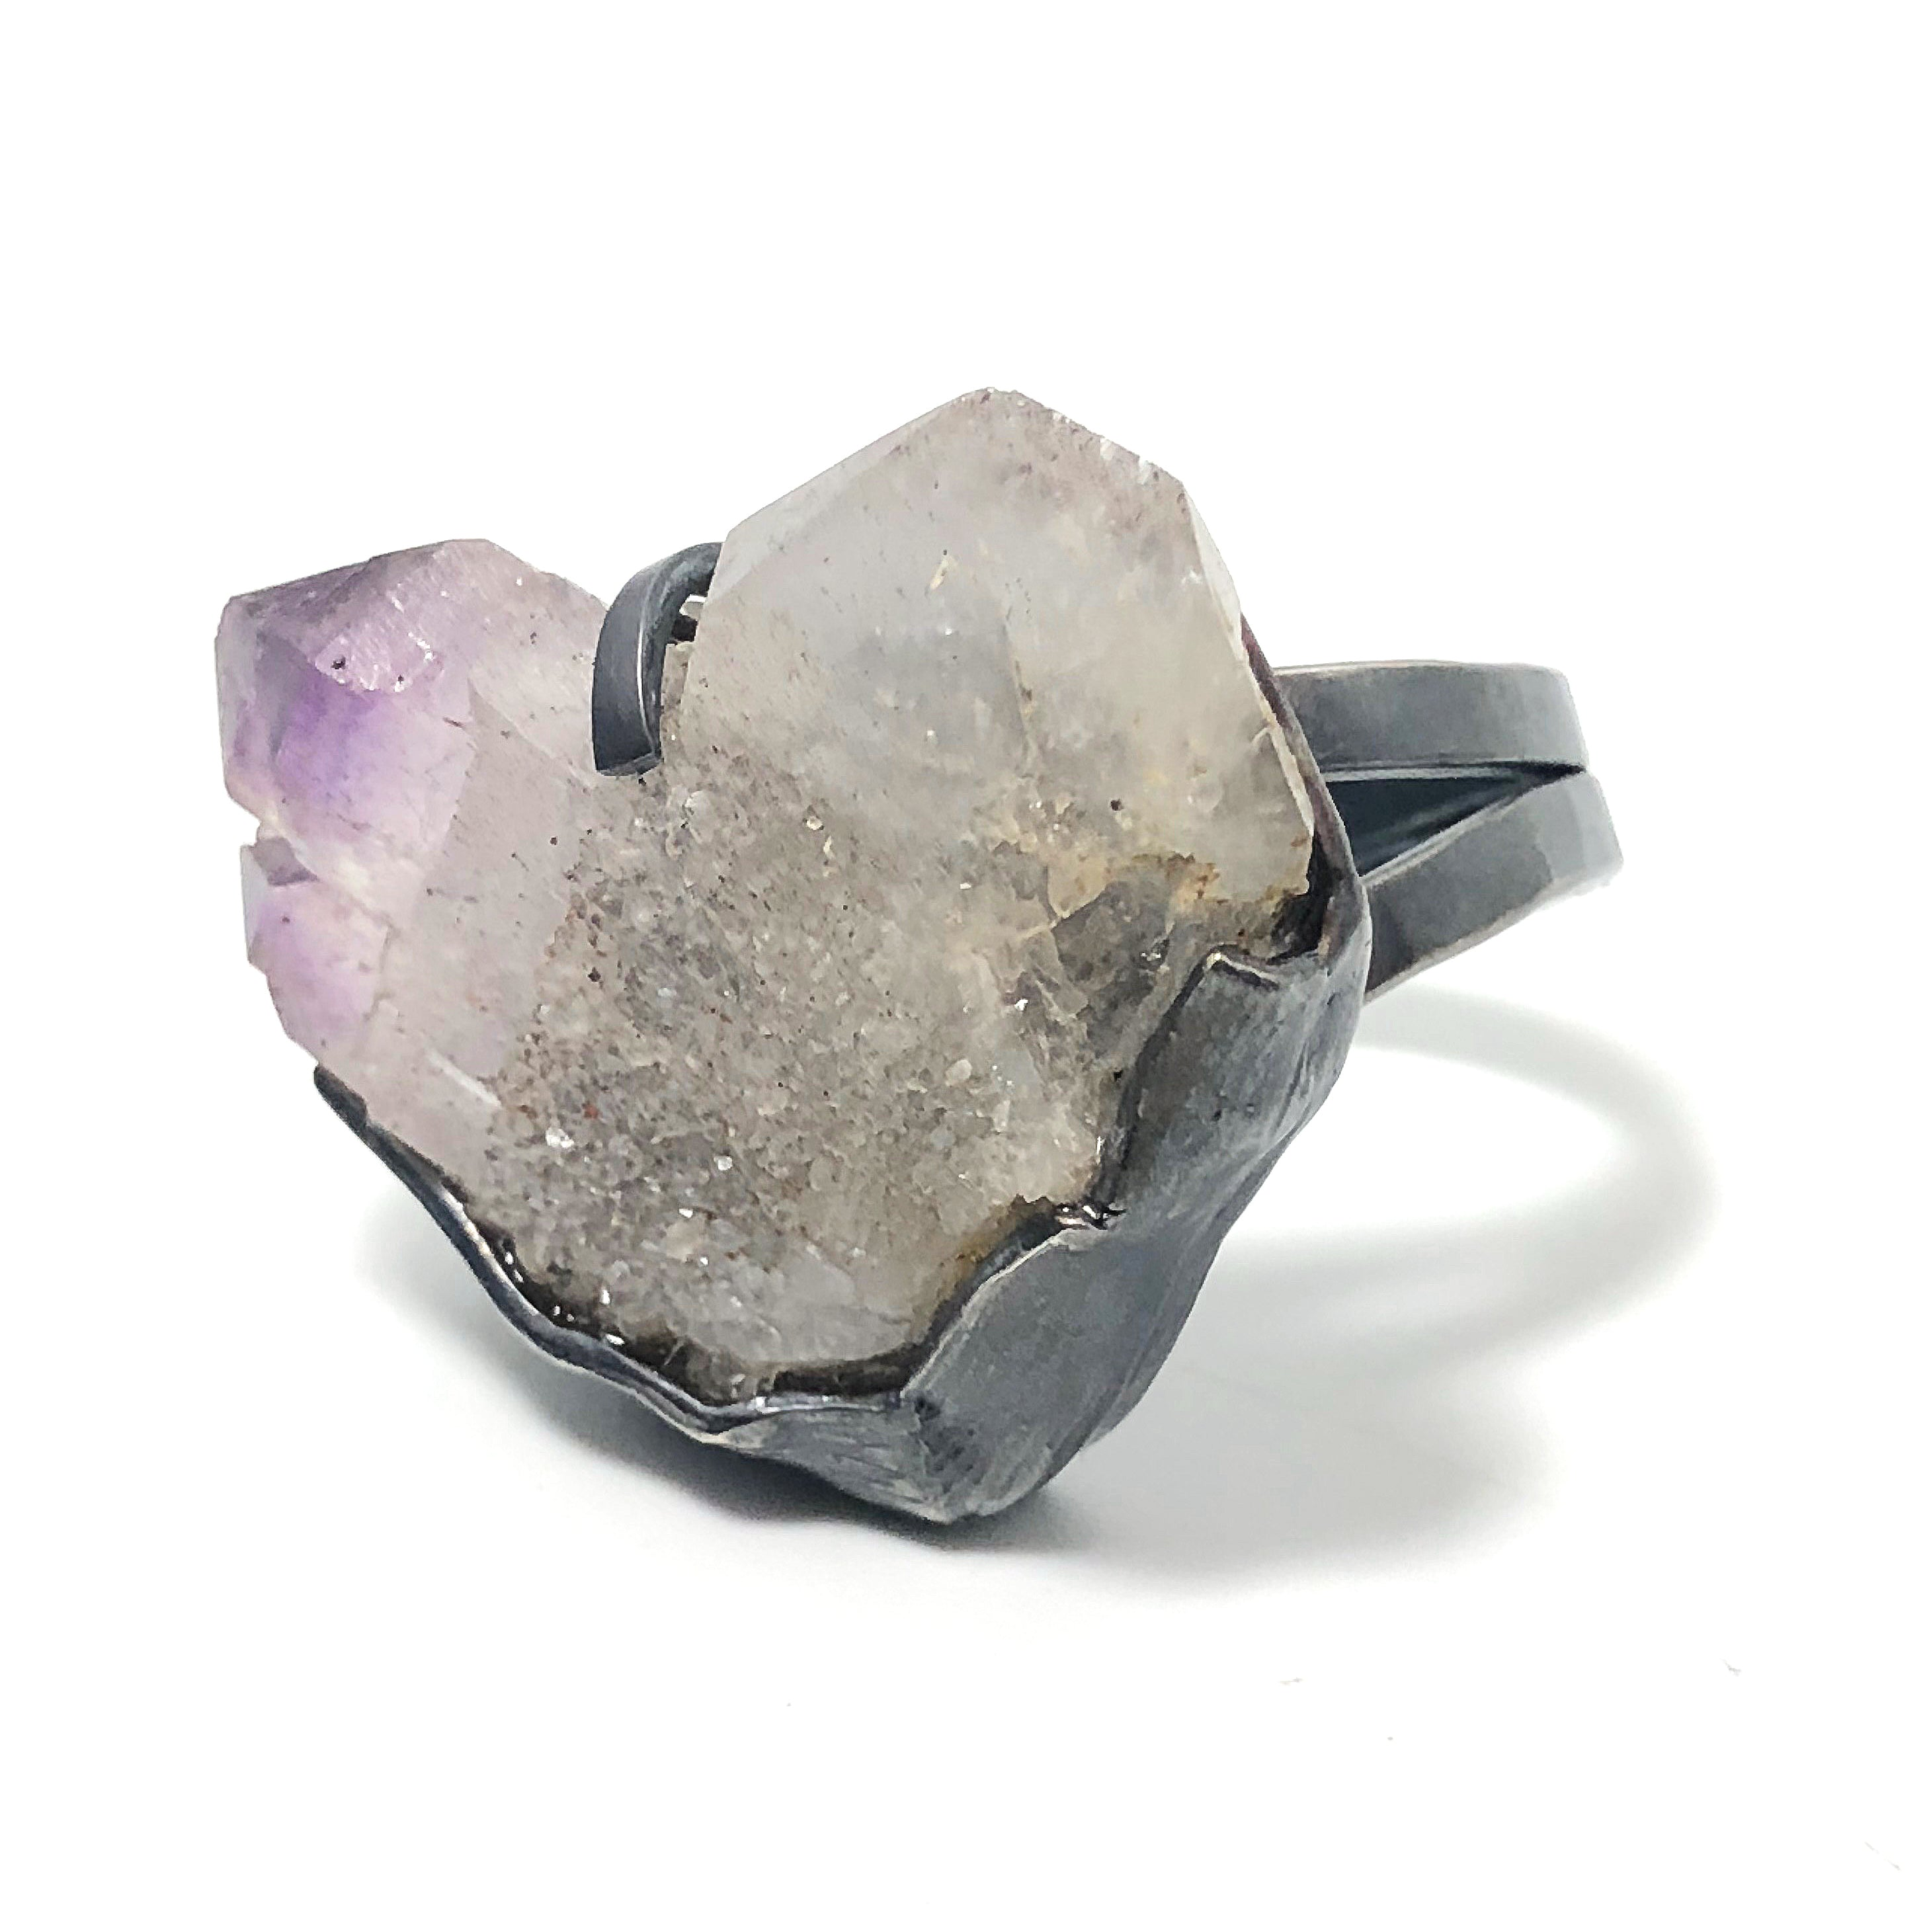 Japan Law Amethyst Crystal Statement Ring.  Handmade by Alex Lozier Jewelry.  Season of the Witch collection.